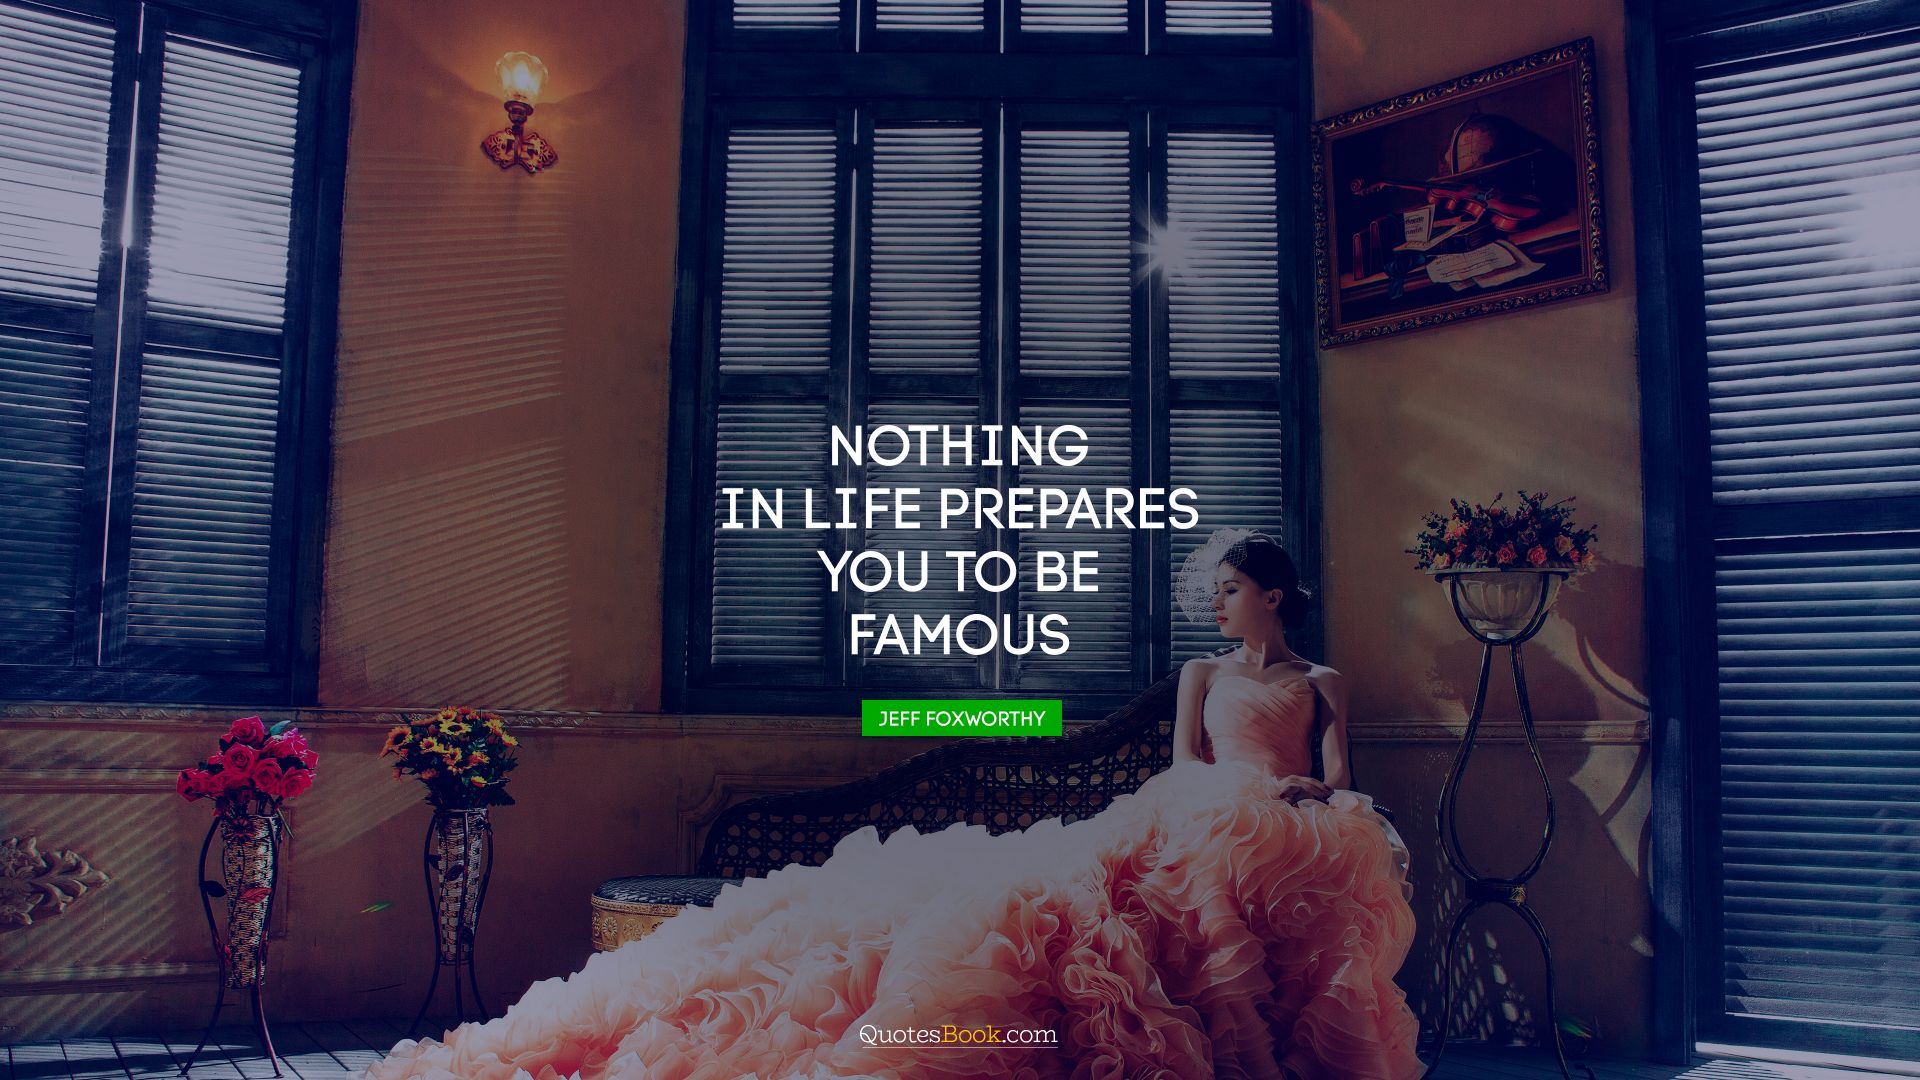 Nothing in life prepares you to be famous. - Quote by Jeff Foxworthy